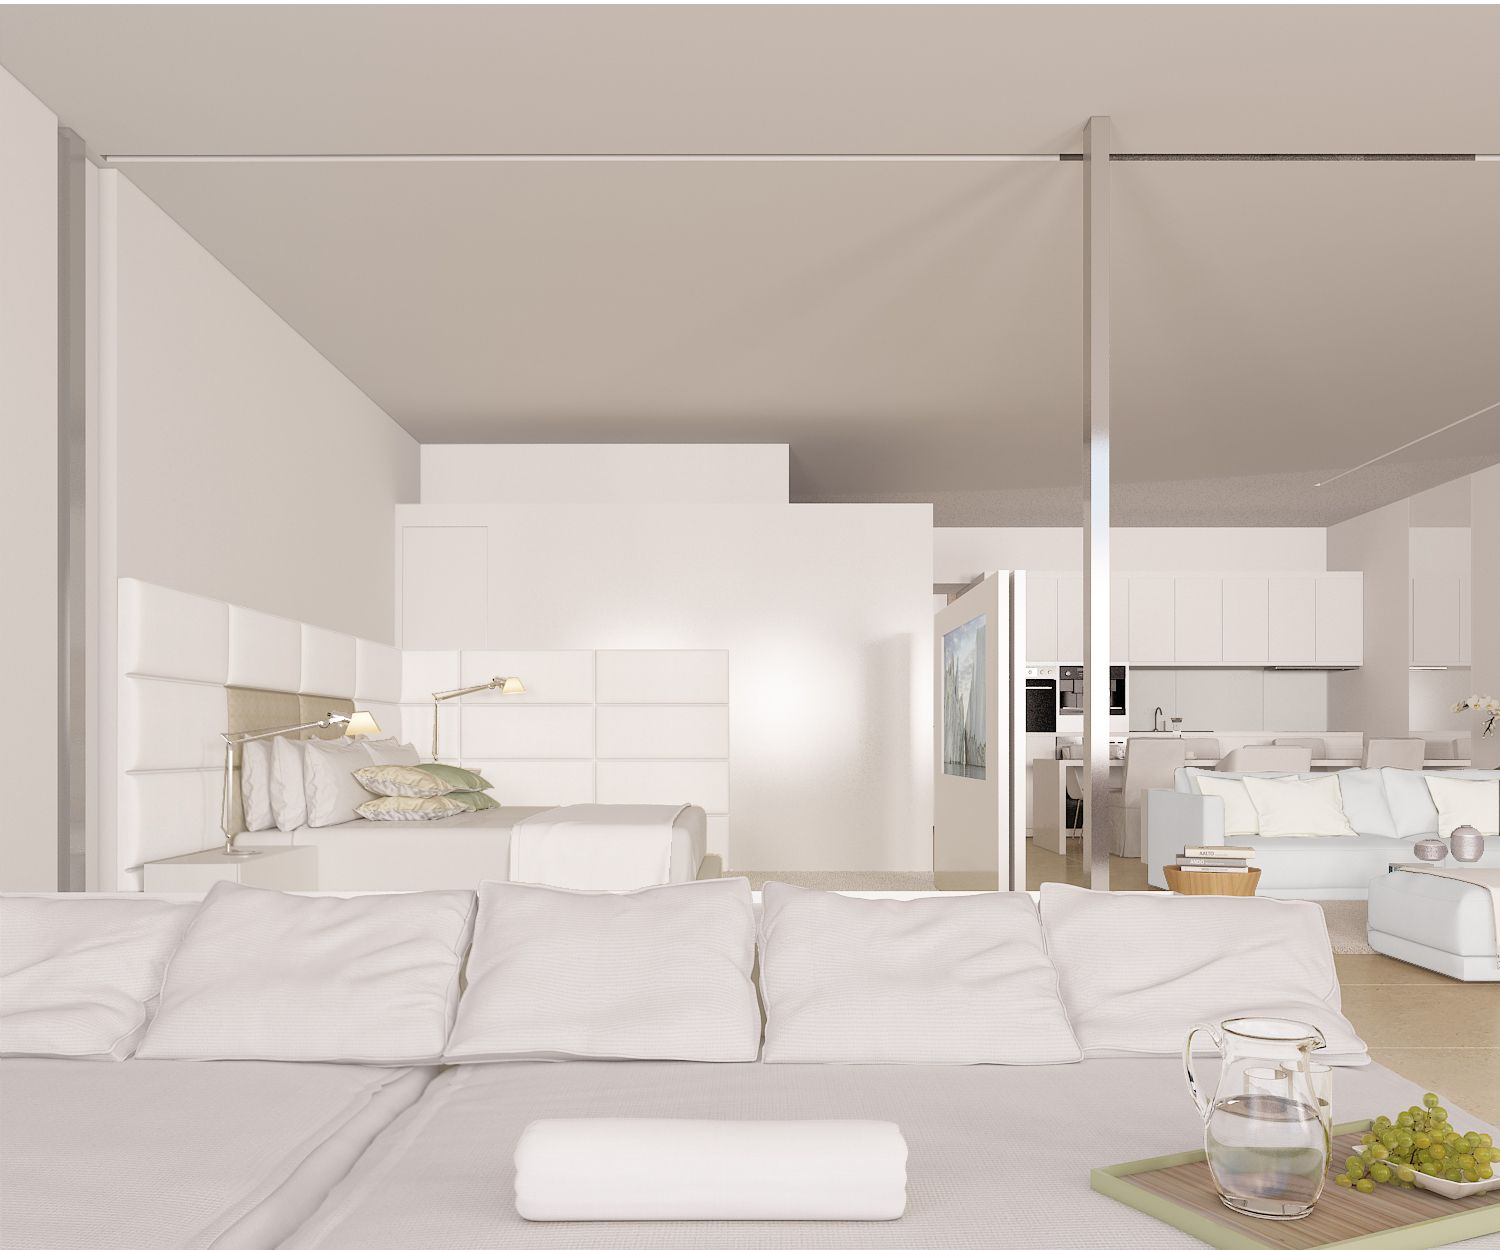 Mar Adentro: High Tech Hotel Allows You To Hyper Customize Your Room